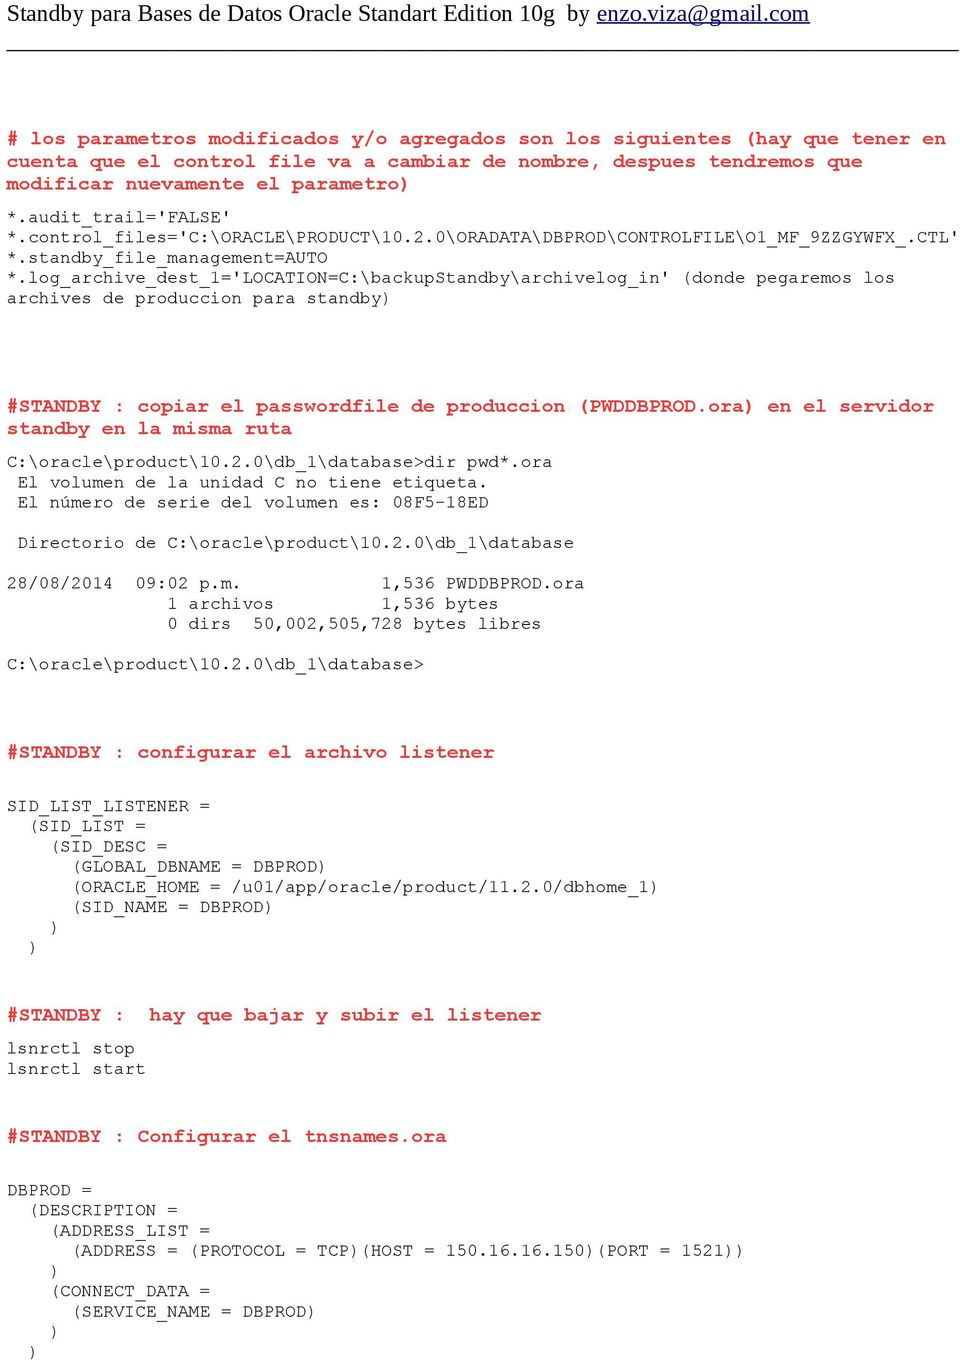 log_archive_dest_1='location=c:\backupstandby\archivelog_in' (donde pegaremos los archives de produccion para standby) #STANDBY : copiar el passwordfile de produccion (PWDDBPROD.